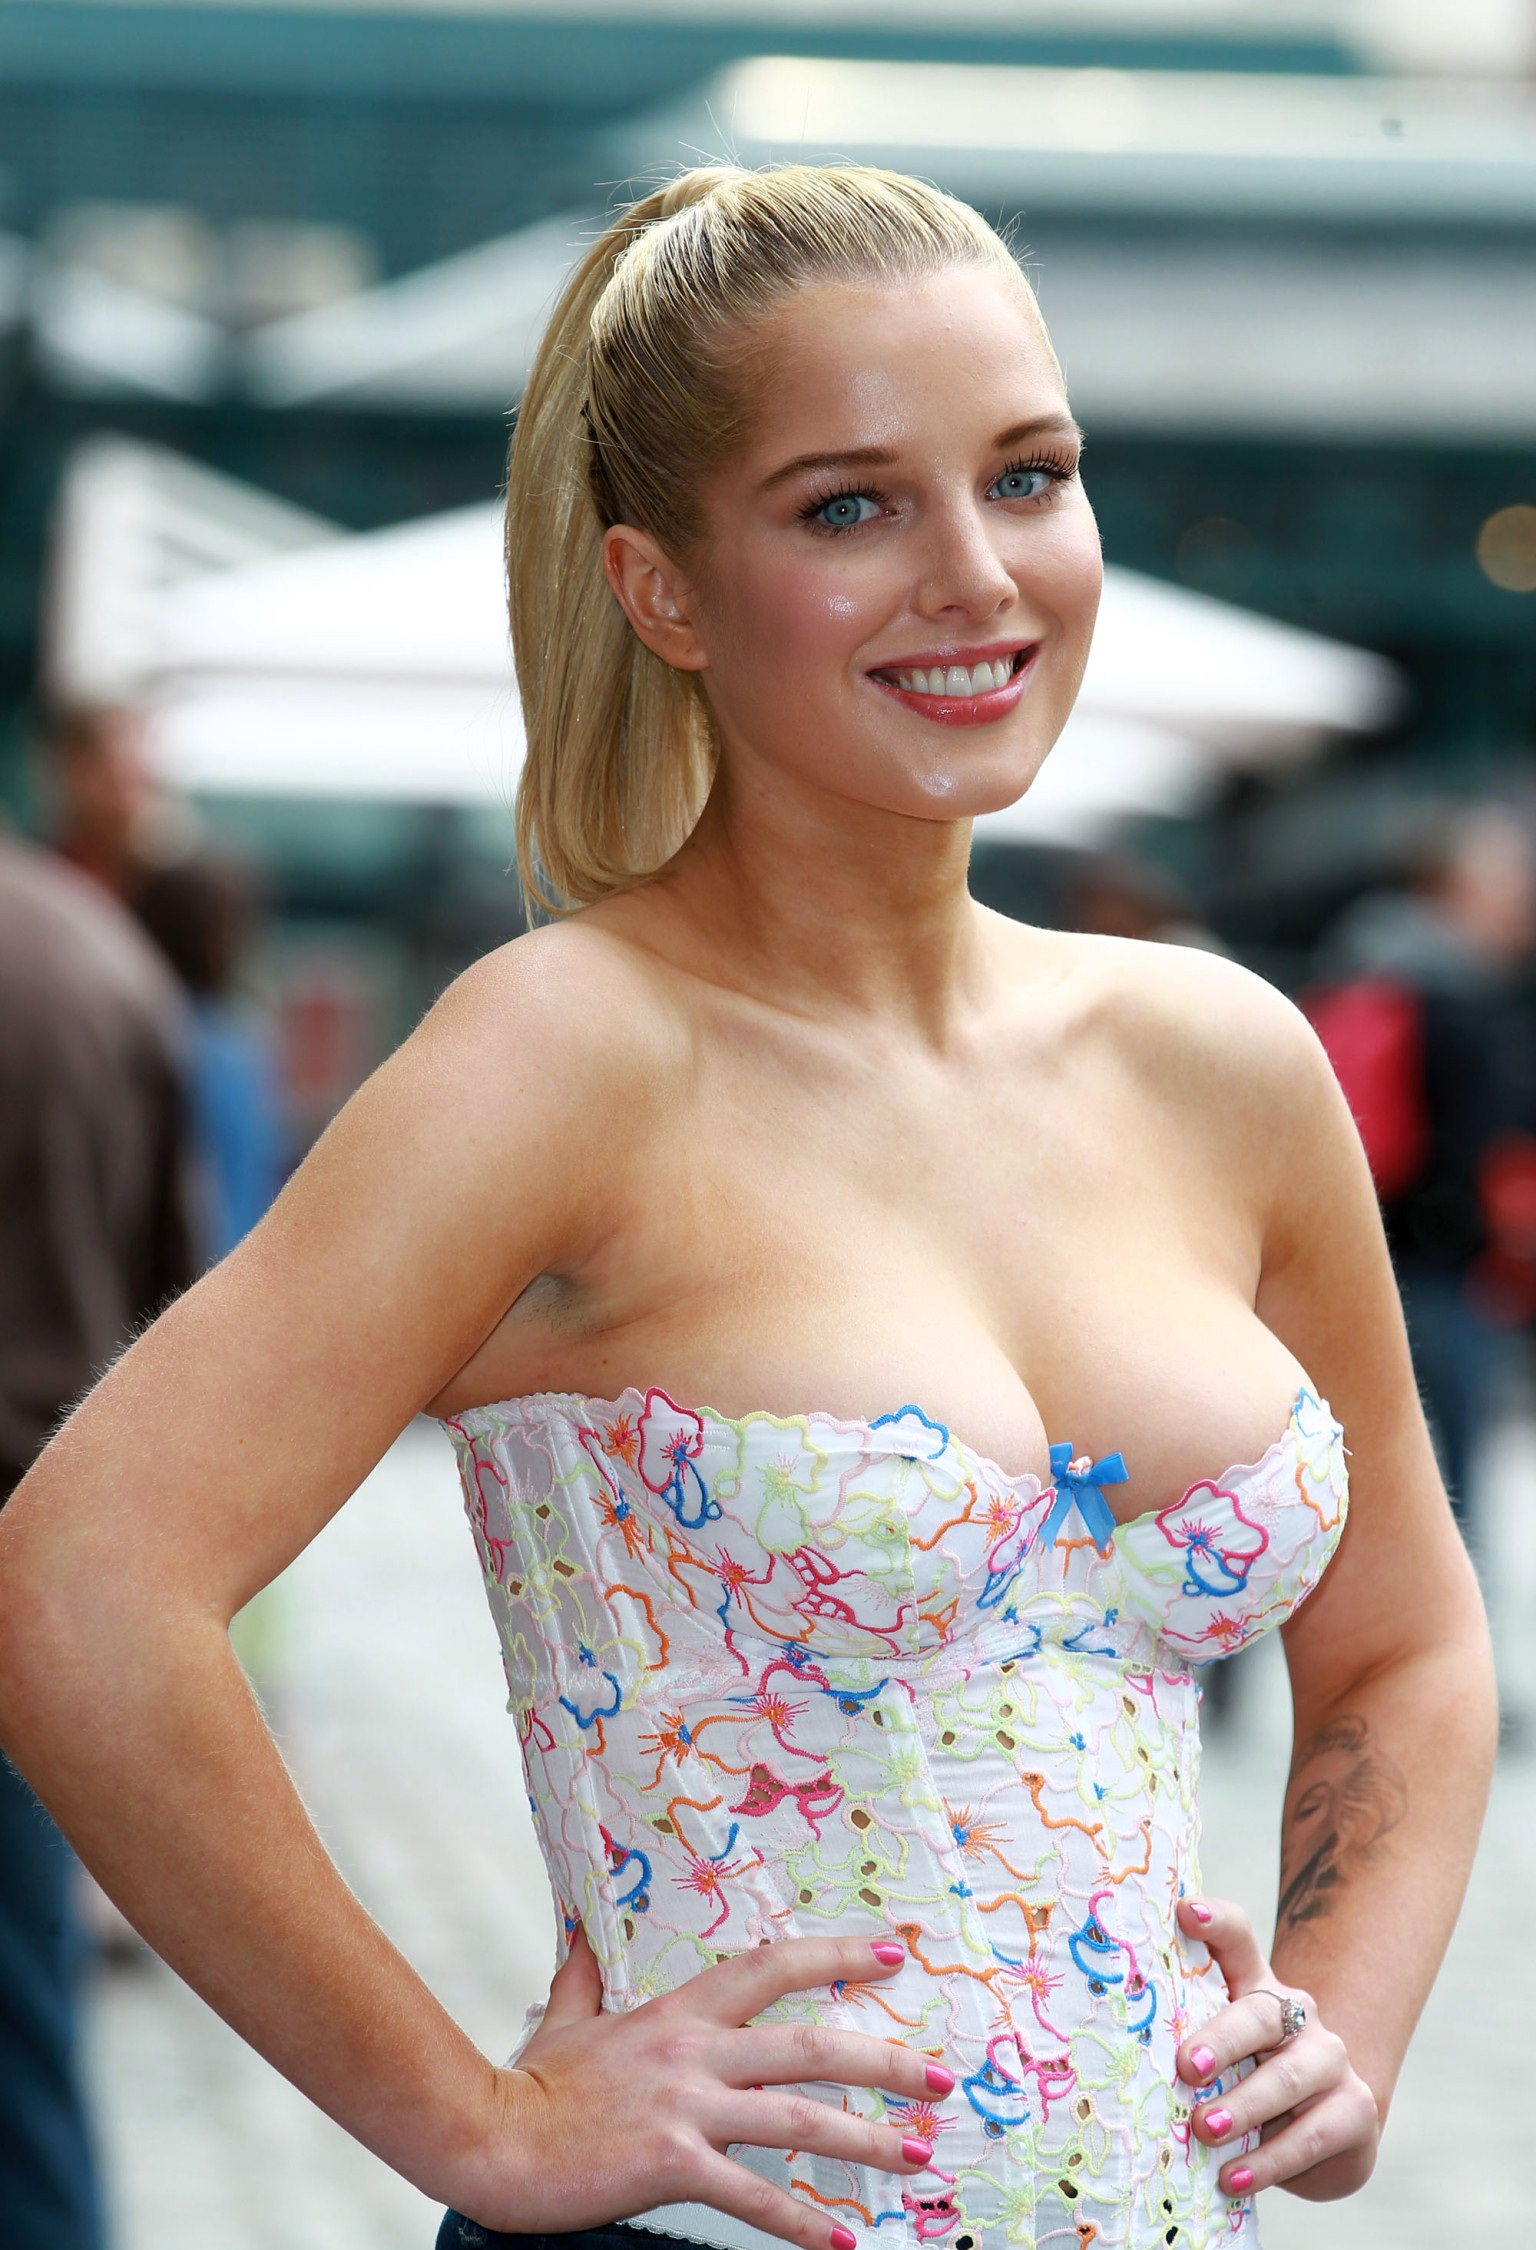 LONDON, UNITED KINGDOM - MAY 23: Helen Flanagan unveils her new PETA campaign at Covent Garden Piazza on May 23, 2013 in London, England. (Photo by Fred Duval/FilmMagic)